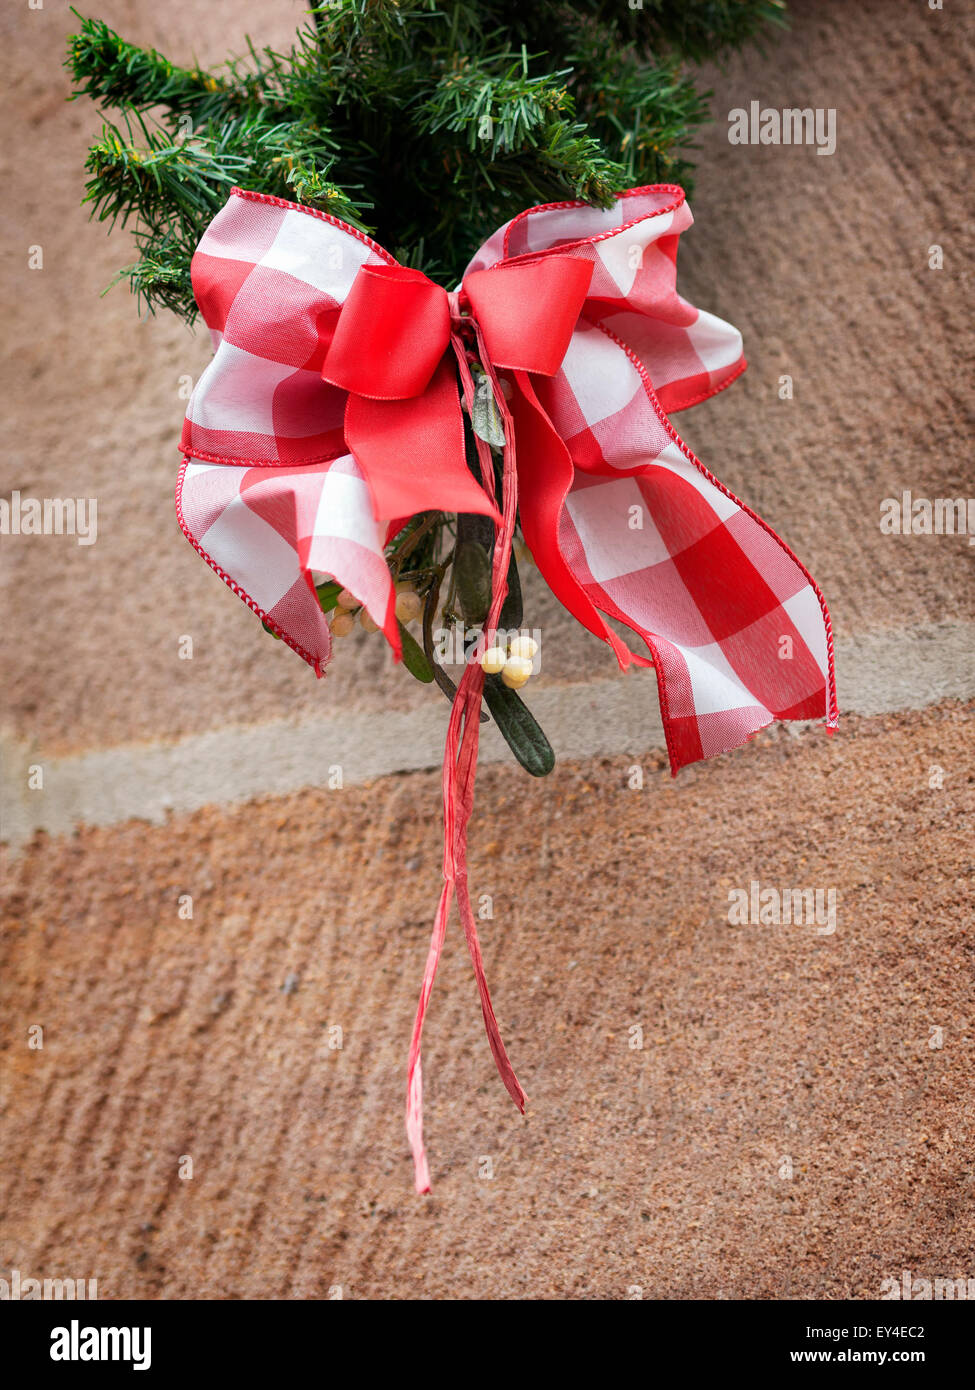 Image of a red white bow of ribbon as decoration on a Christmas market Stock Photo